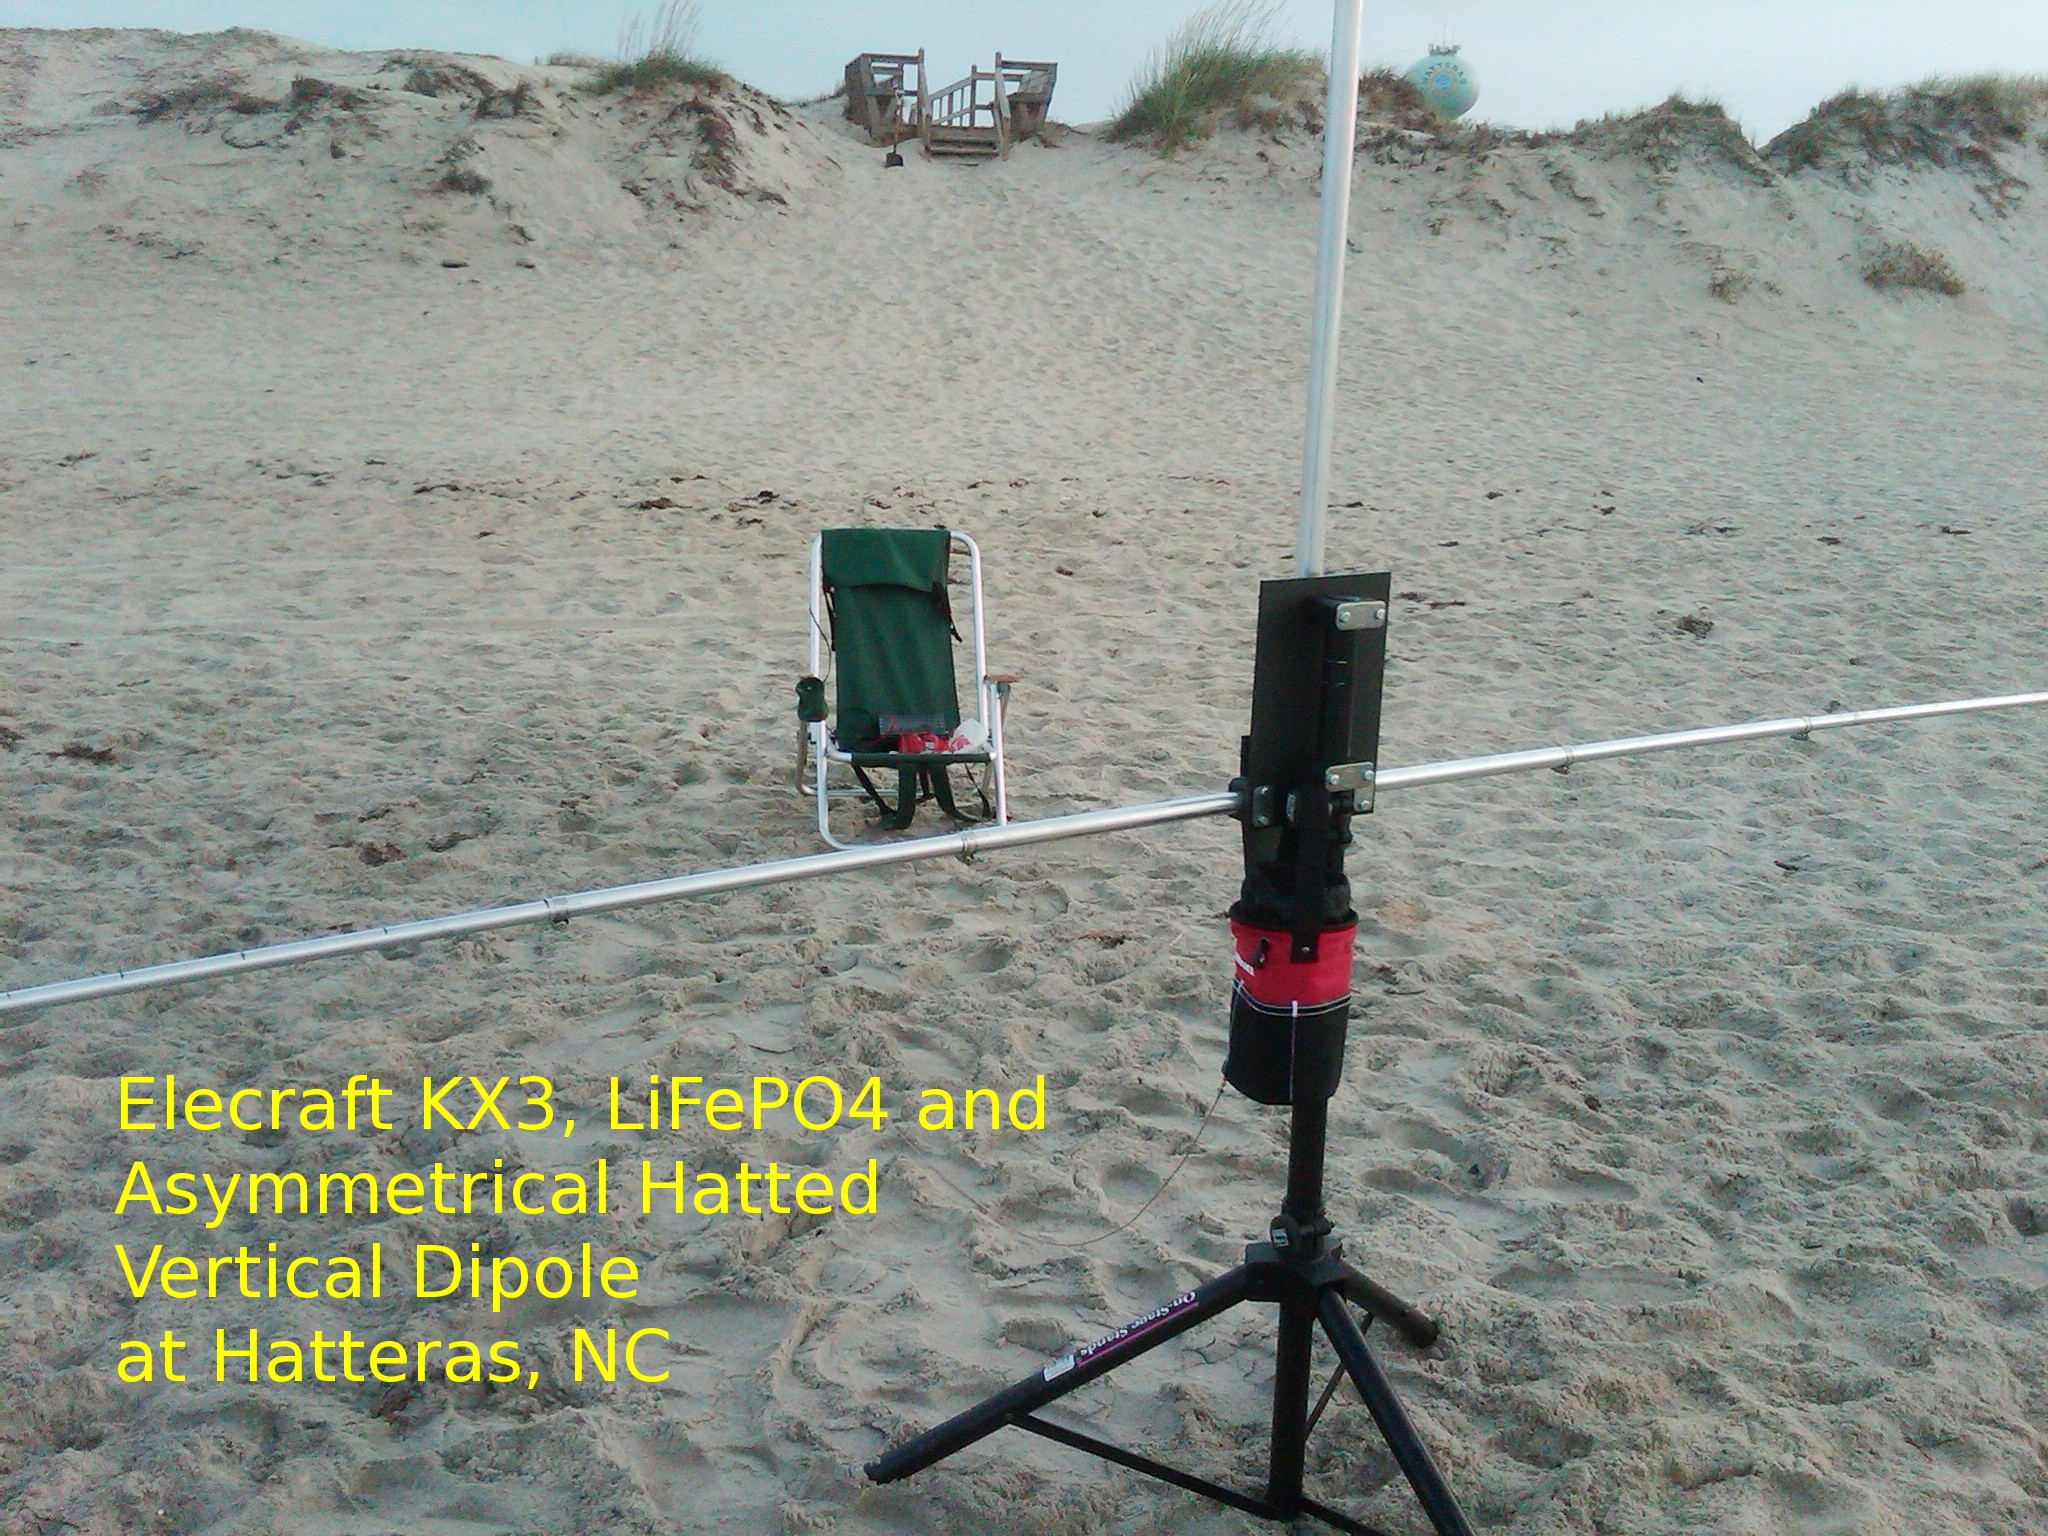 Hatteras Shack with the Asymmetrical Hatted Vertical Dipole antenna